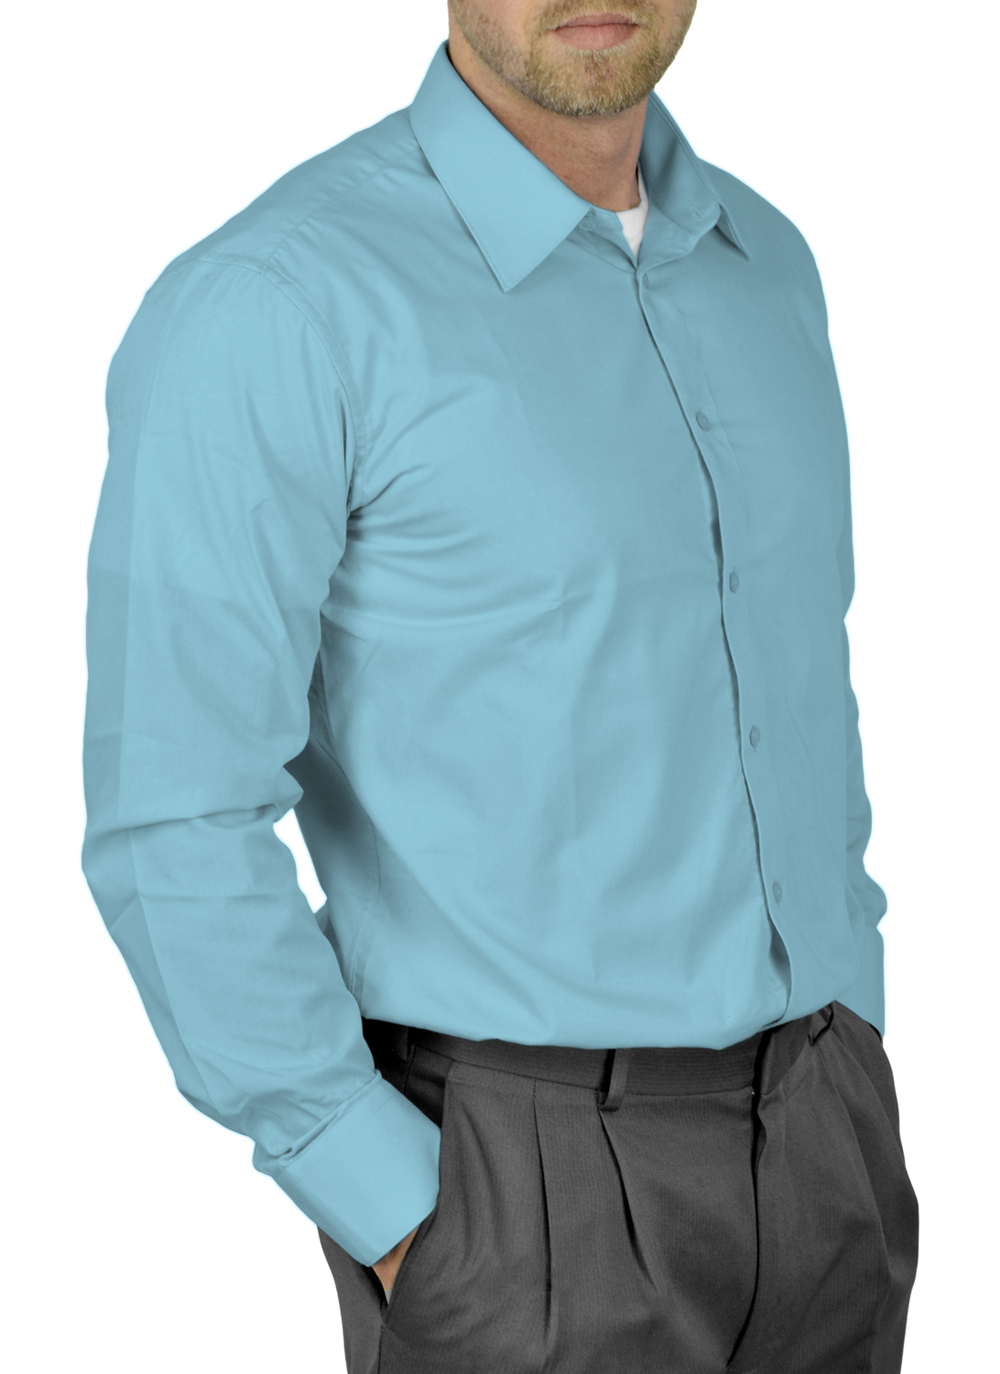 Mens Dress Shirt Slim and Regular Fit Office Casual French Cuff Moda Di Raza - Teal 14.5